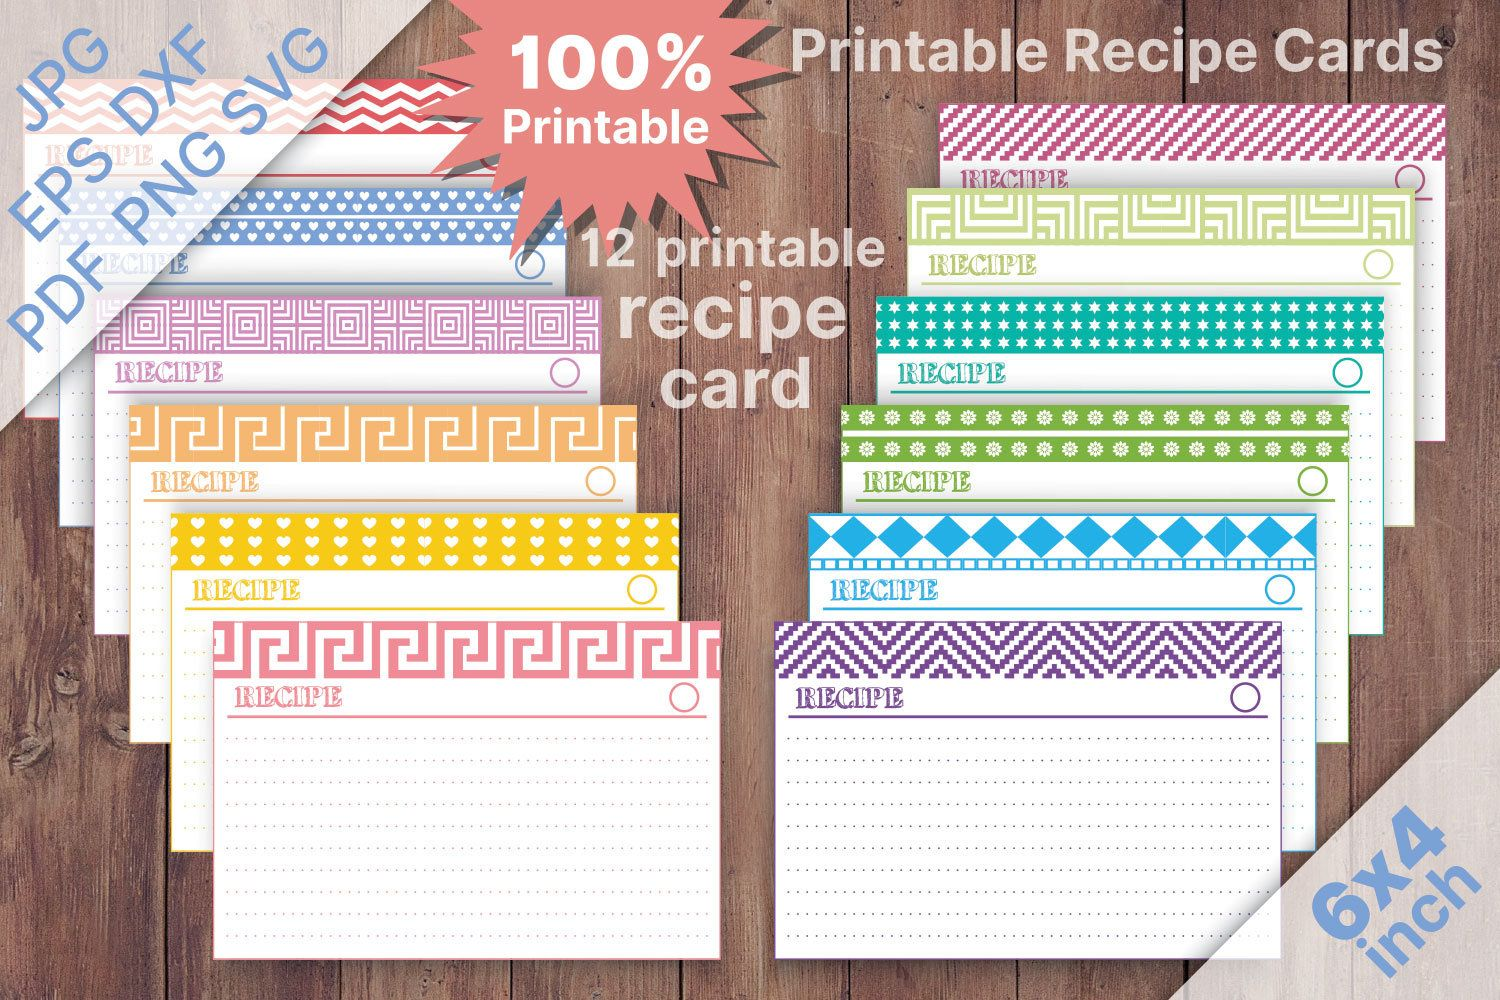 Printable Recipe Cards 4x6 Recipe Cards Editable Recipes Etsy Printable Recipe Cards Recipe Cards Template Recipe Cards Printable Free